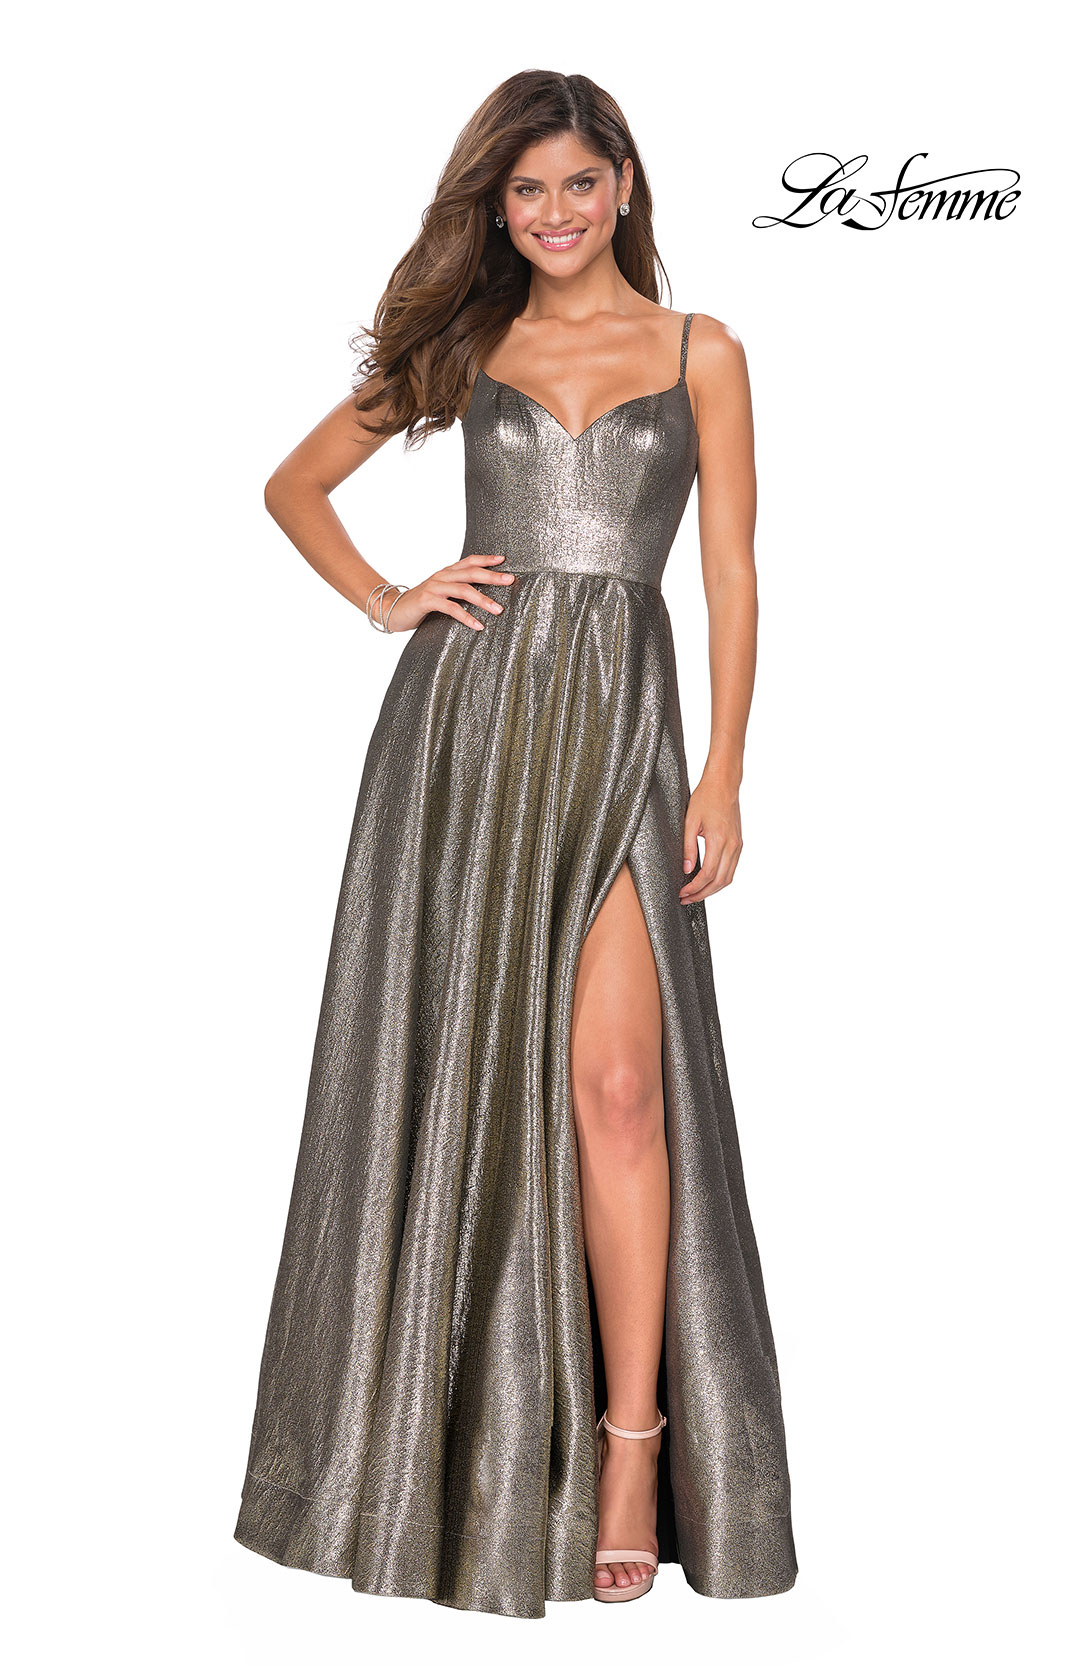 84a4edc8279 Picture of  Metallic A-line Prom Gown with Side Leg Slit